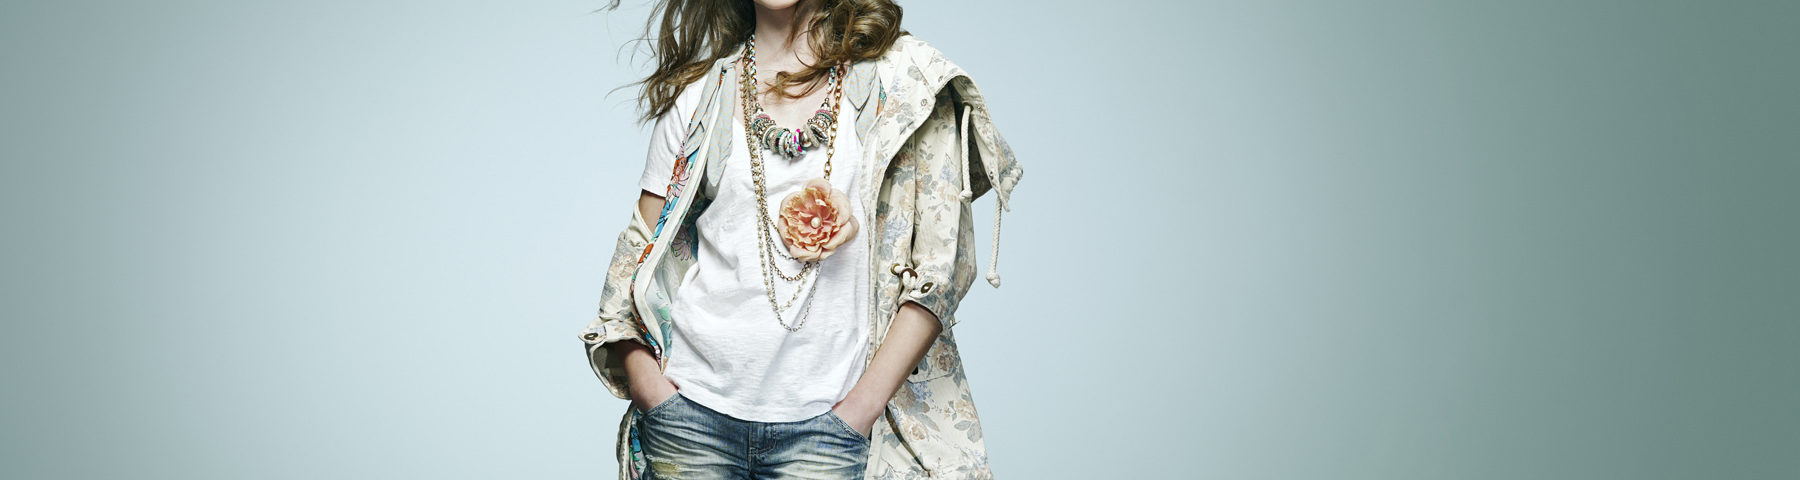 Basic Wardrobe Planning is Easier If You Know Your Fashion Style - 3 Benefits & 8 Fashion Archetypes